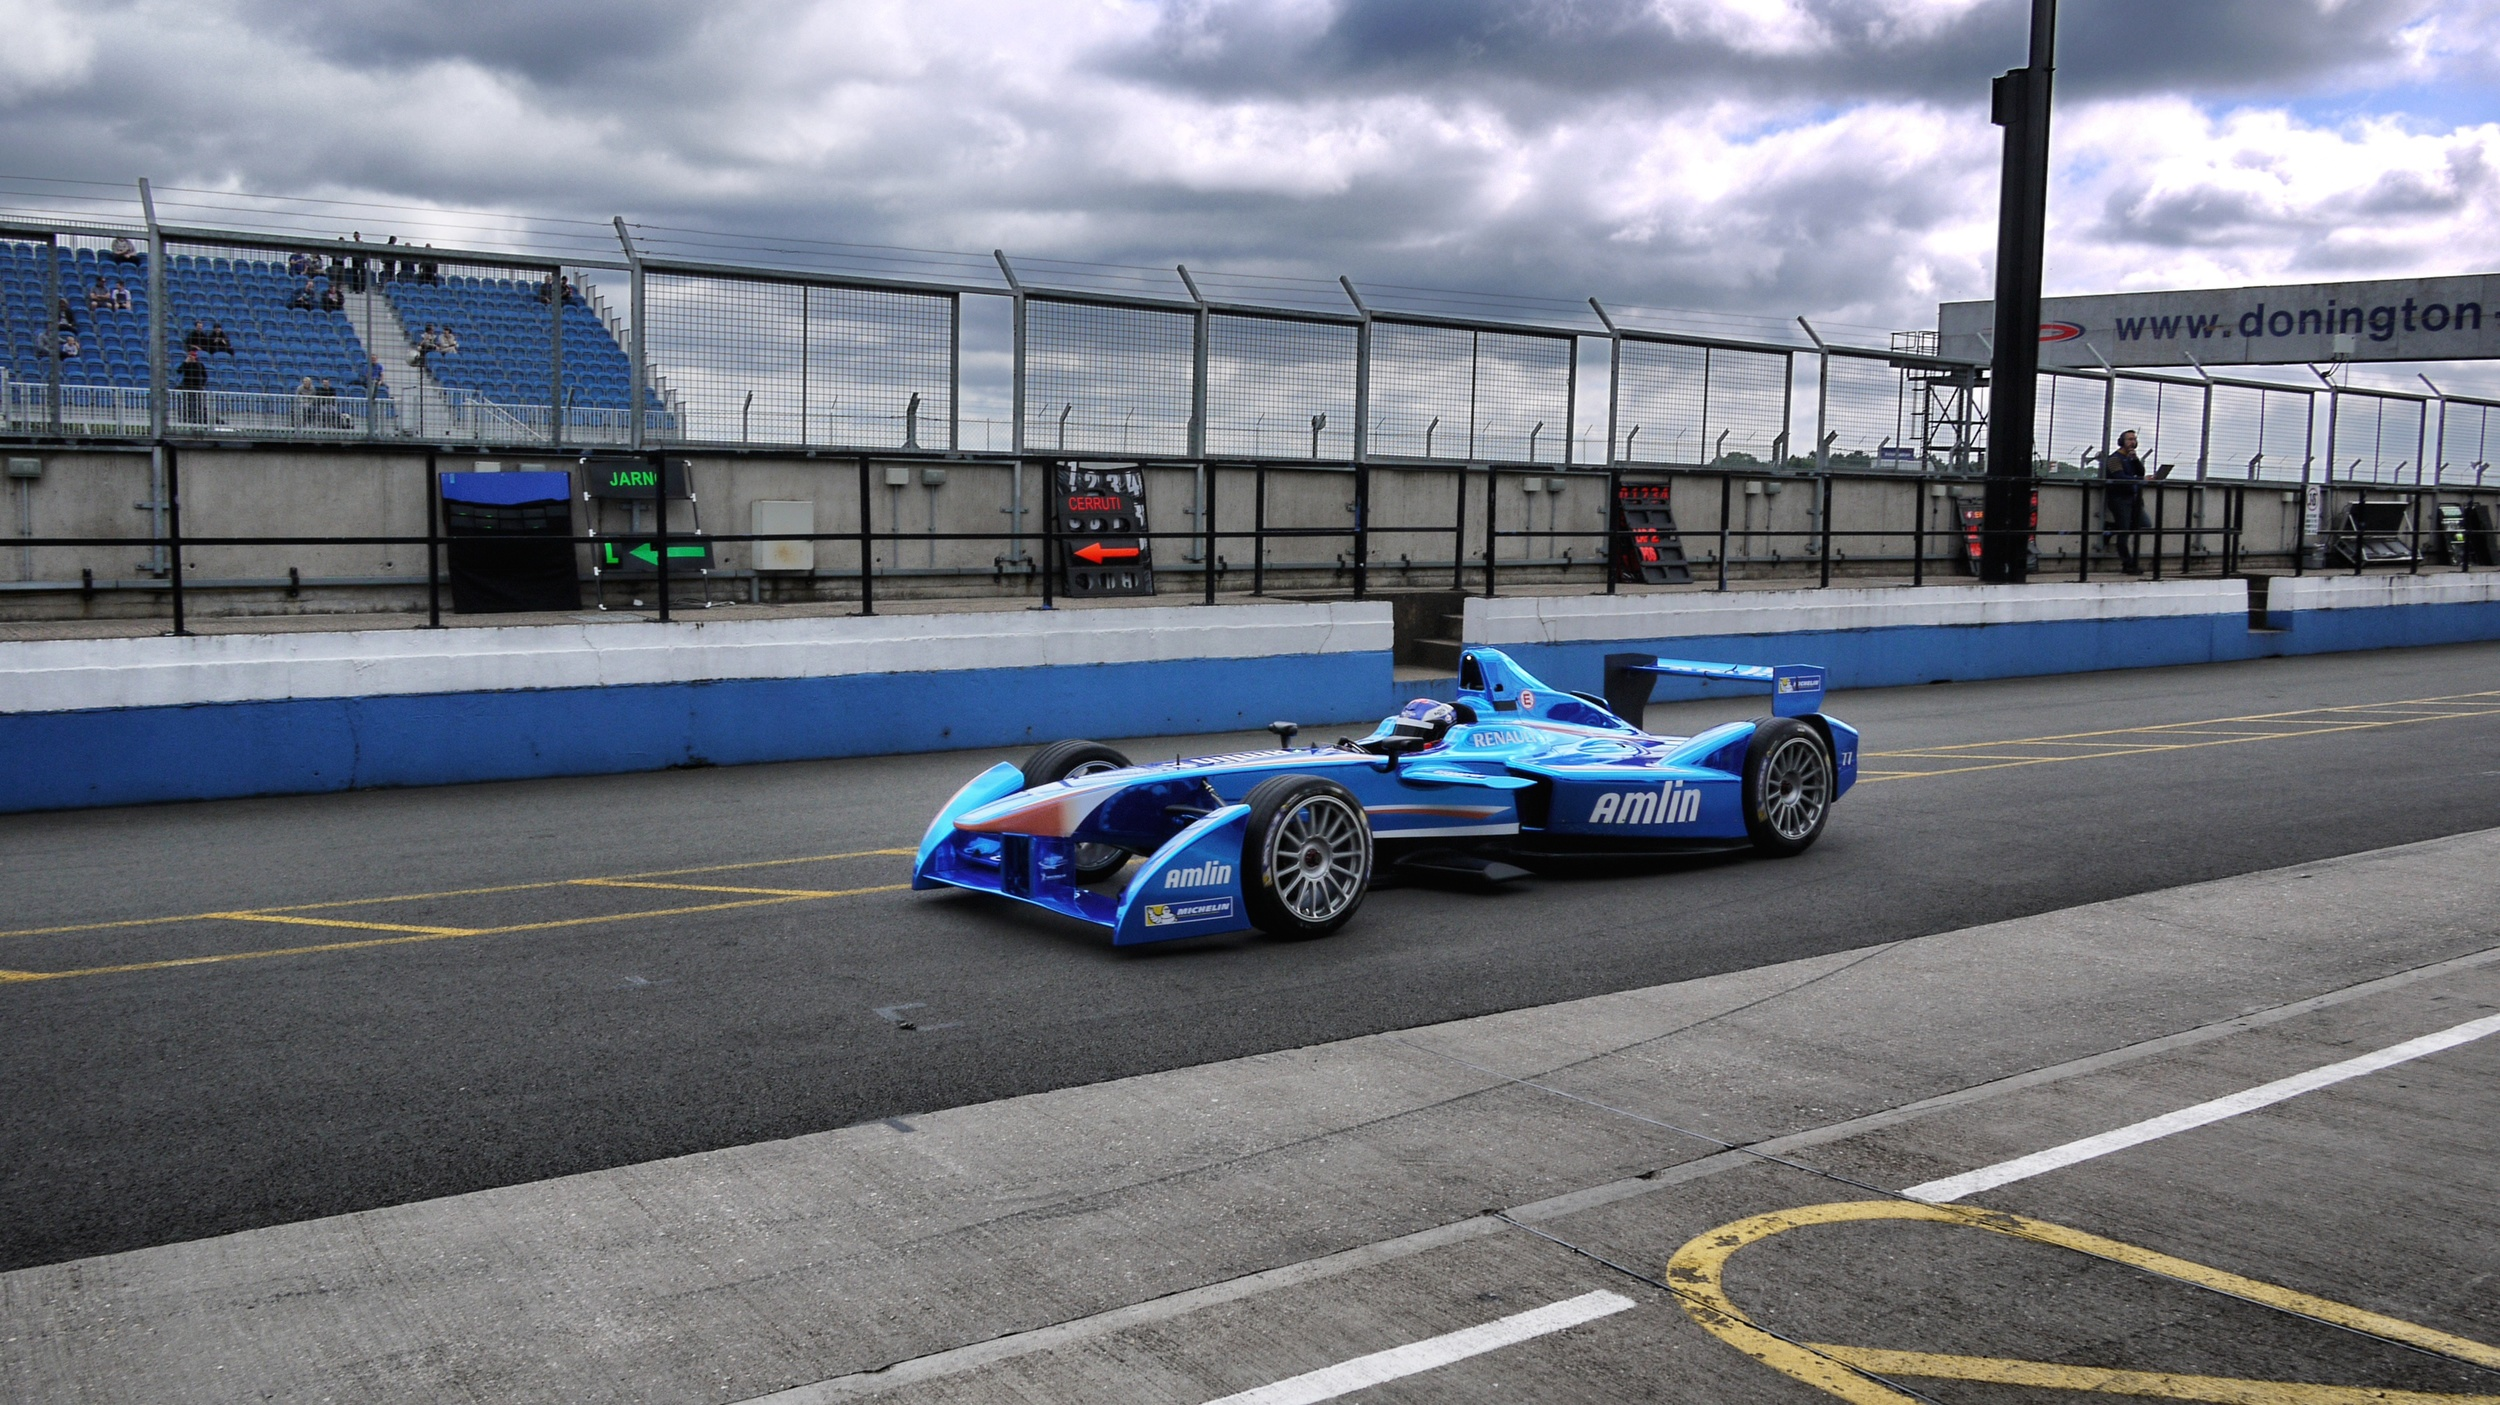 Team Amlin-Aguri car in the Donington pit lane